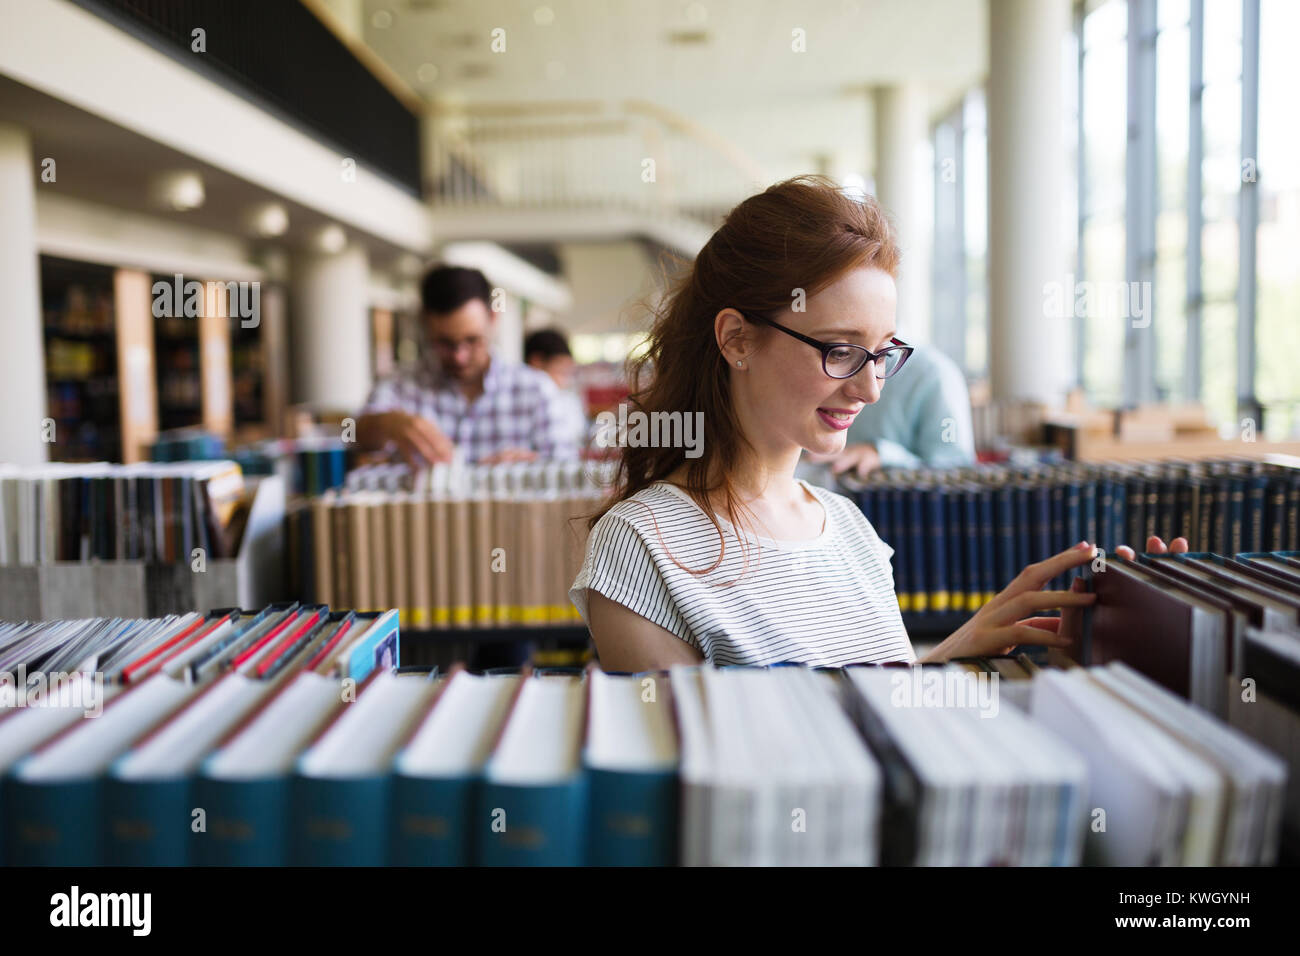 Portrait of a pretty smiling girl reading book in library - Stock Image